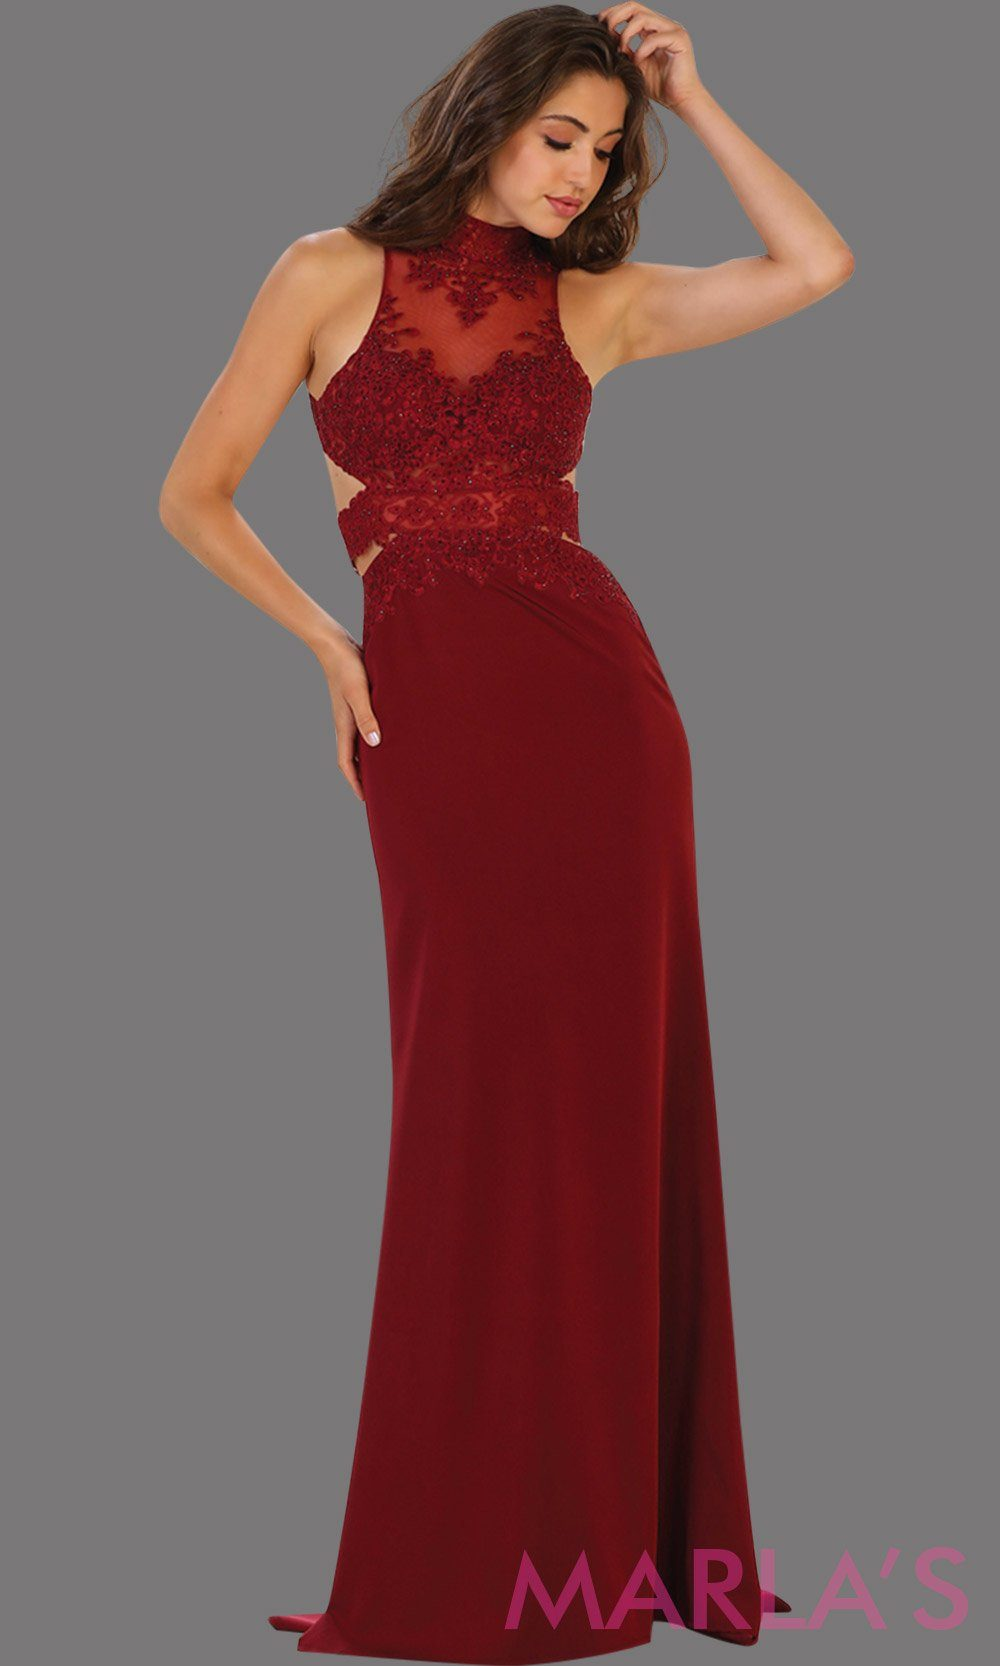 Long burgundy open back fitted dress. This low back dark red gown is perfect for prom, formal gala, formal wedding, reception, engagement dress. Features high neck with illusion waist, neckline, low back.